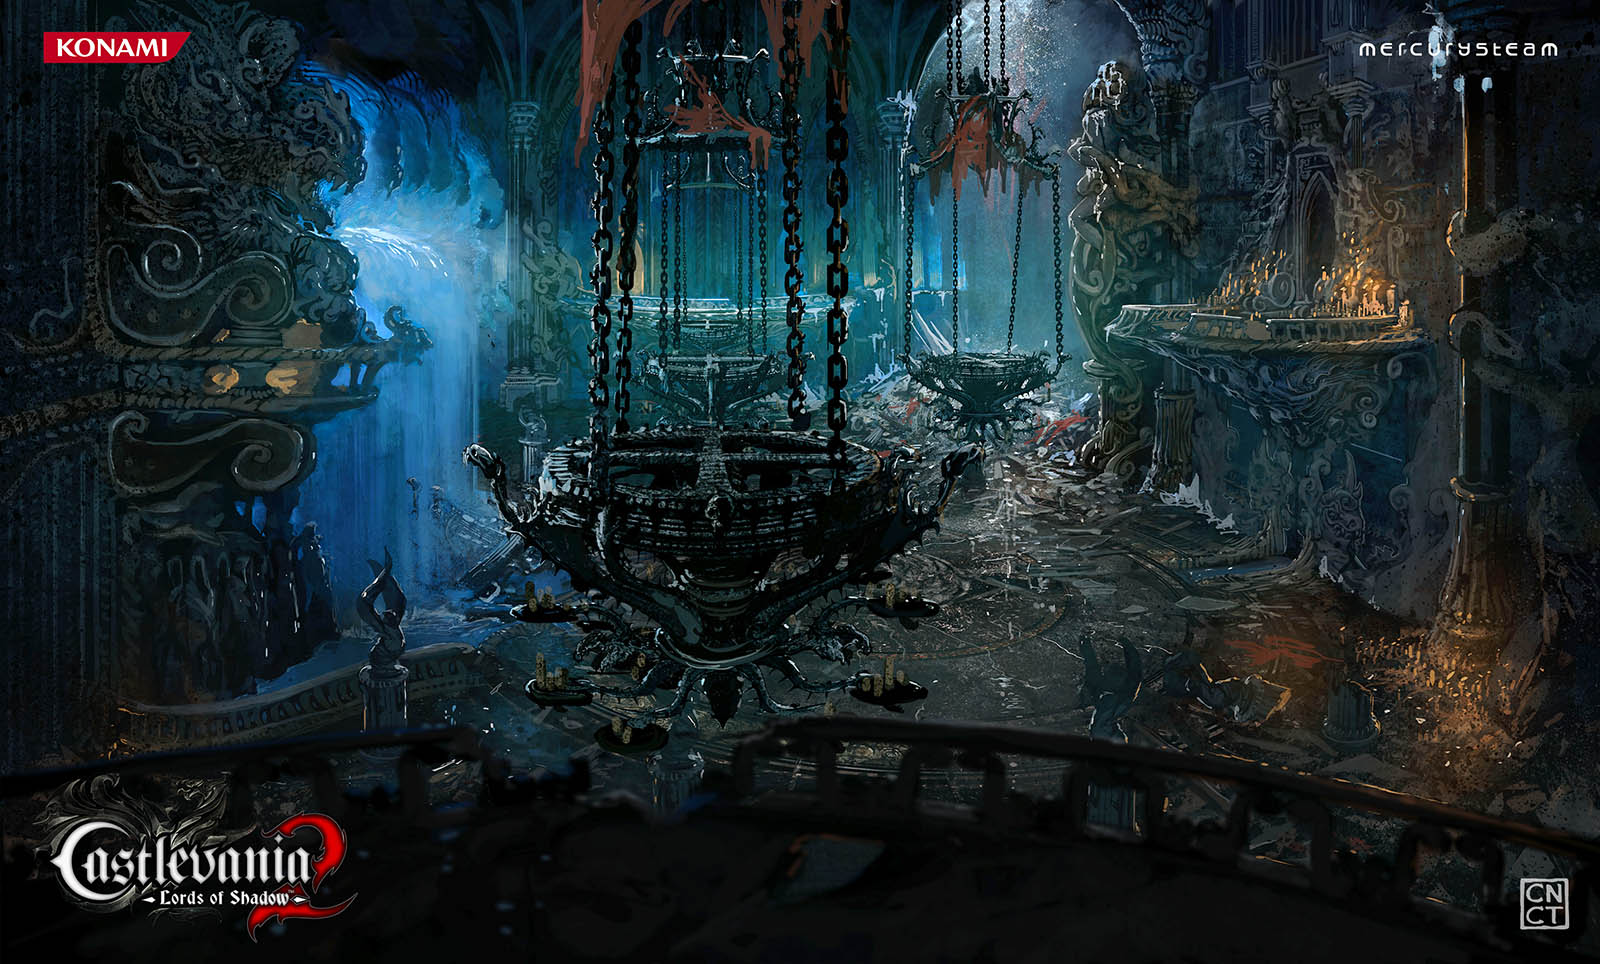 Castlevania: Lords of Shadow 2 Concept Art by Carlos NCT